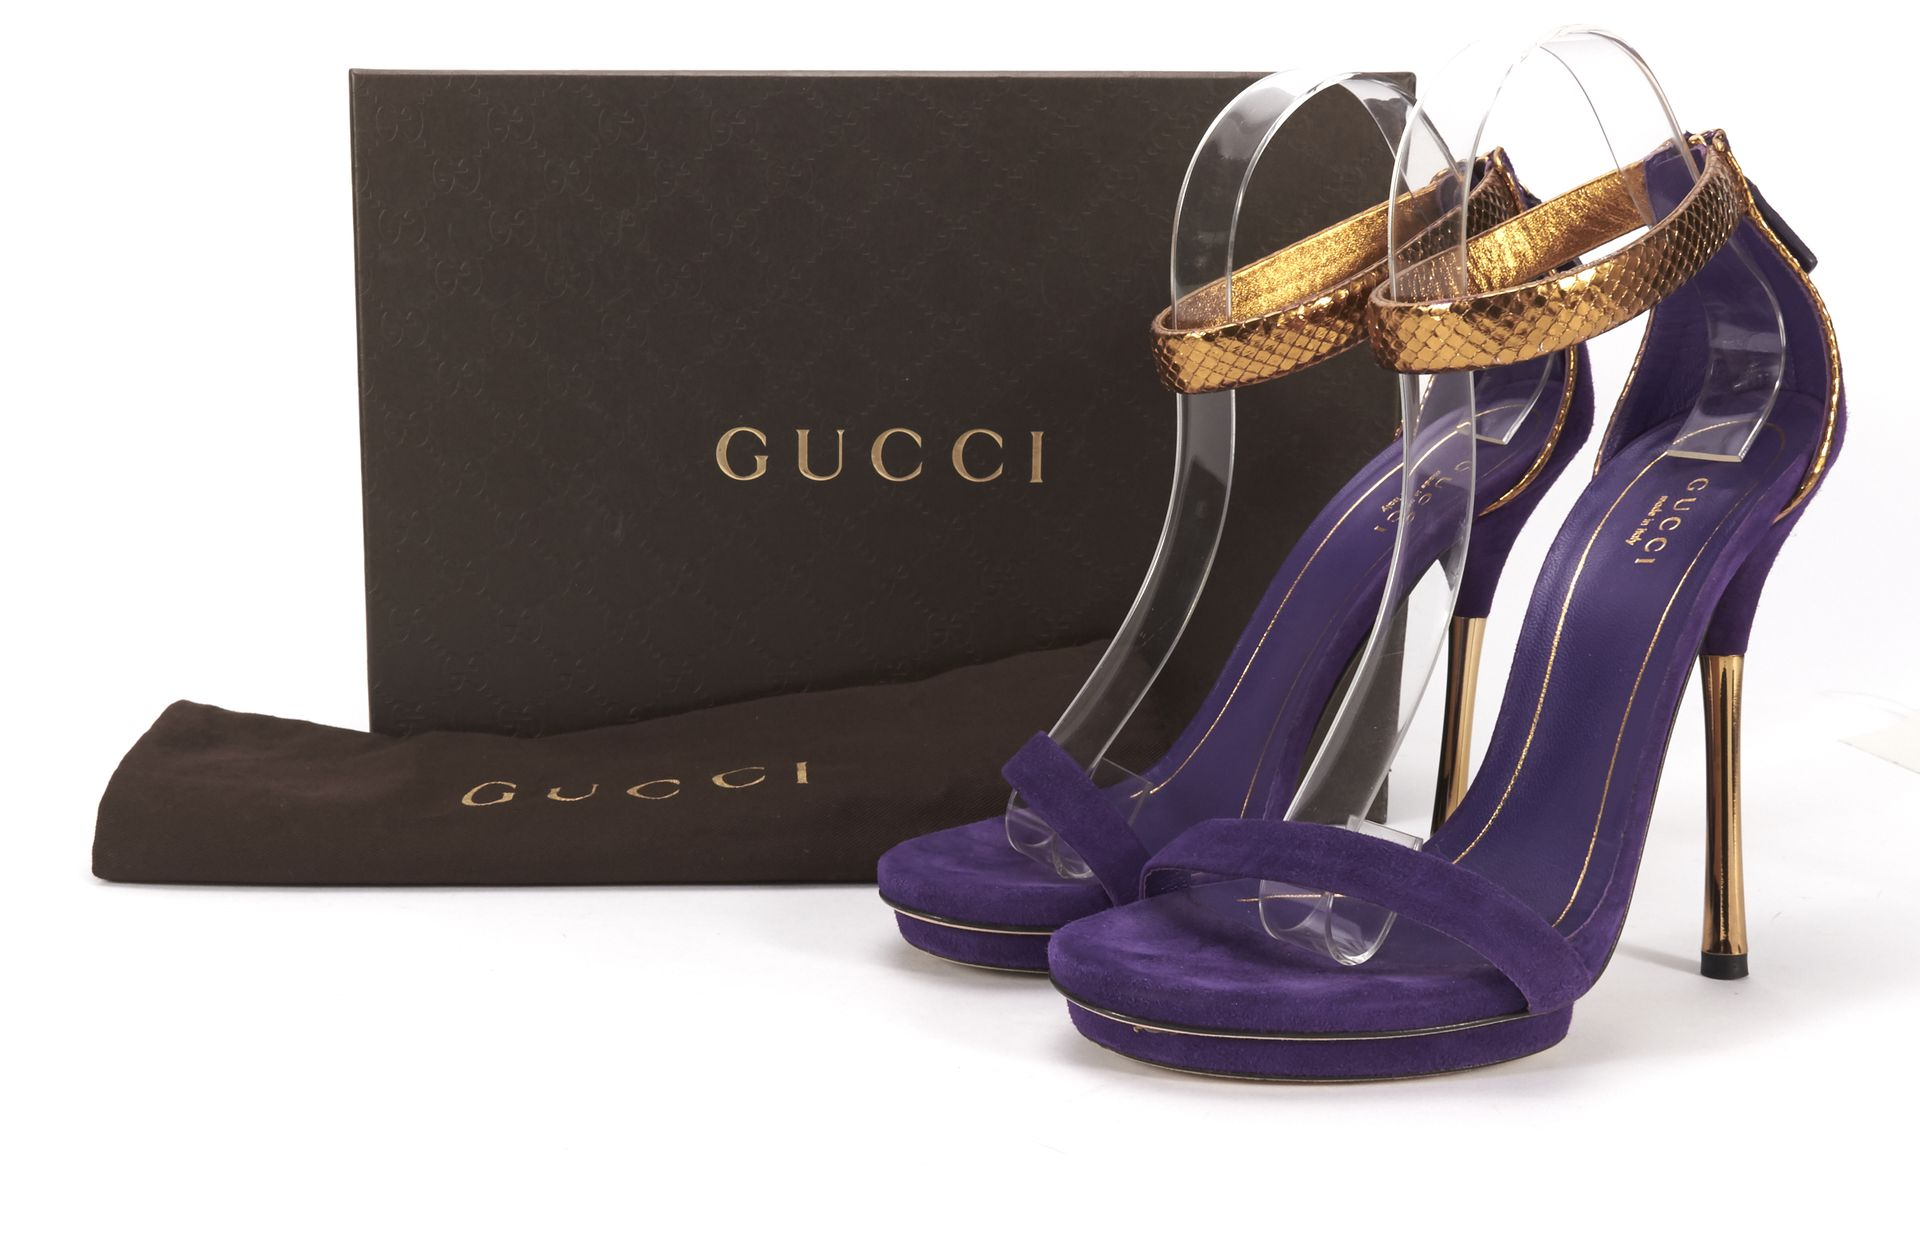 GUCCI Purple Suede Gold Snakeskin Strappy Sandal Heels Size 38 ...